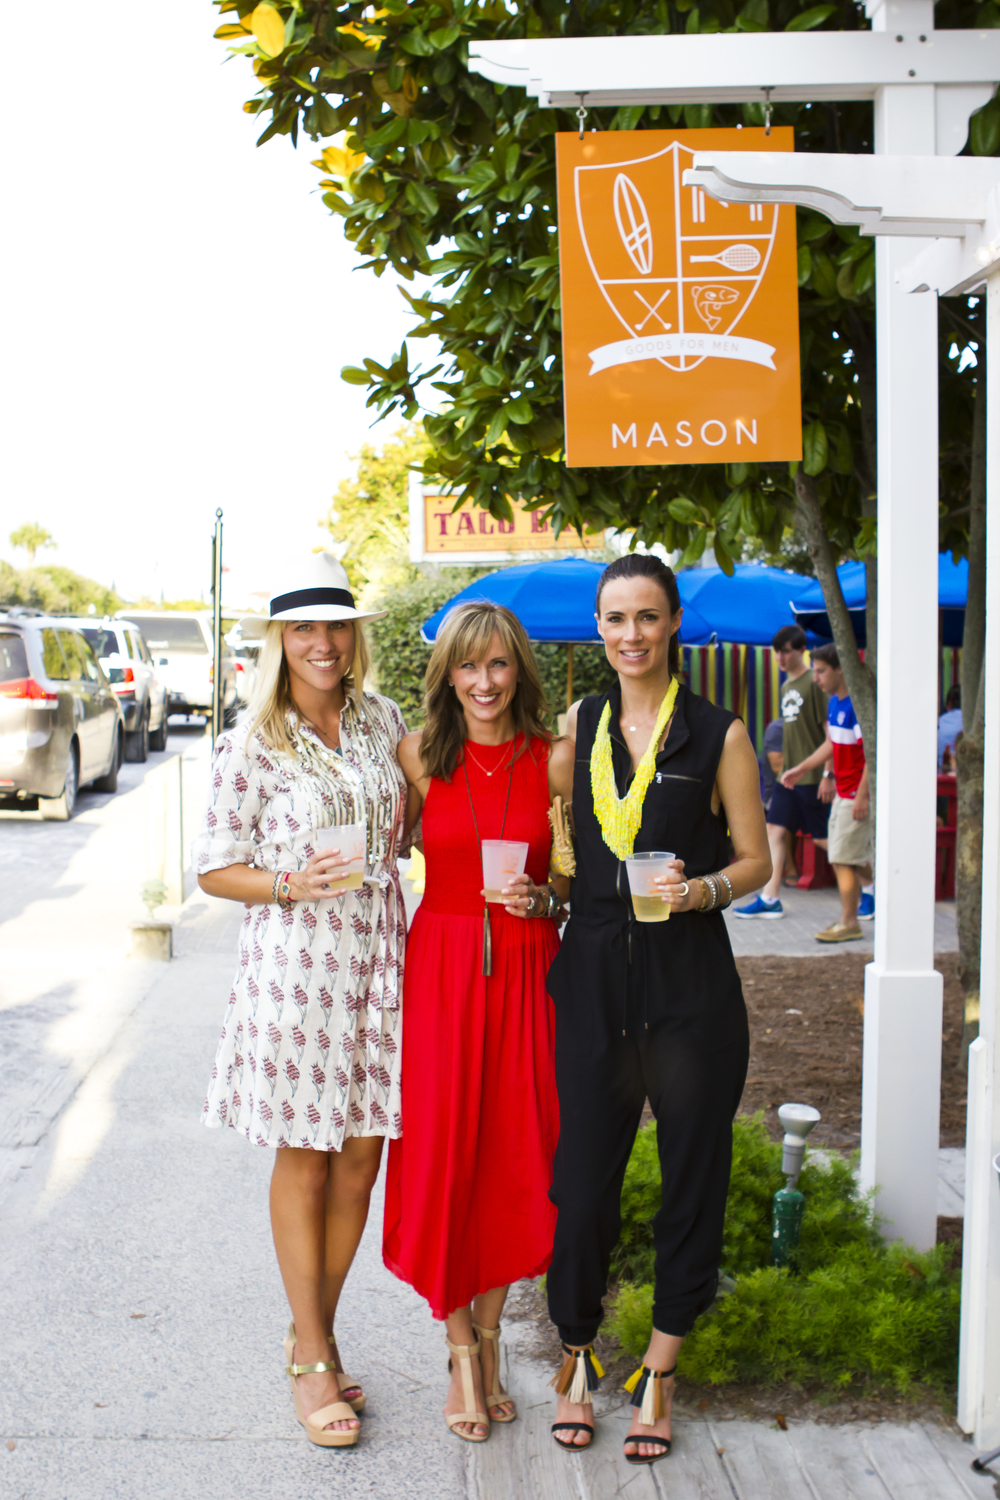 (L to R) Cindy Krutz (co-owner), me & Celia Tucker (co-owner).  We are all wearing apparel and heels from  Willow .